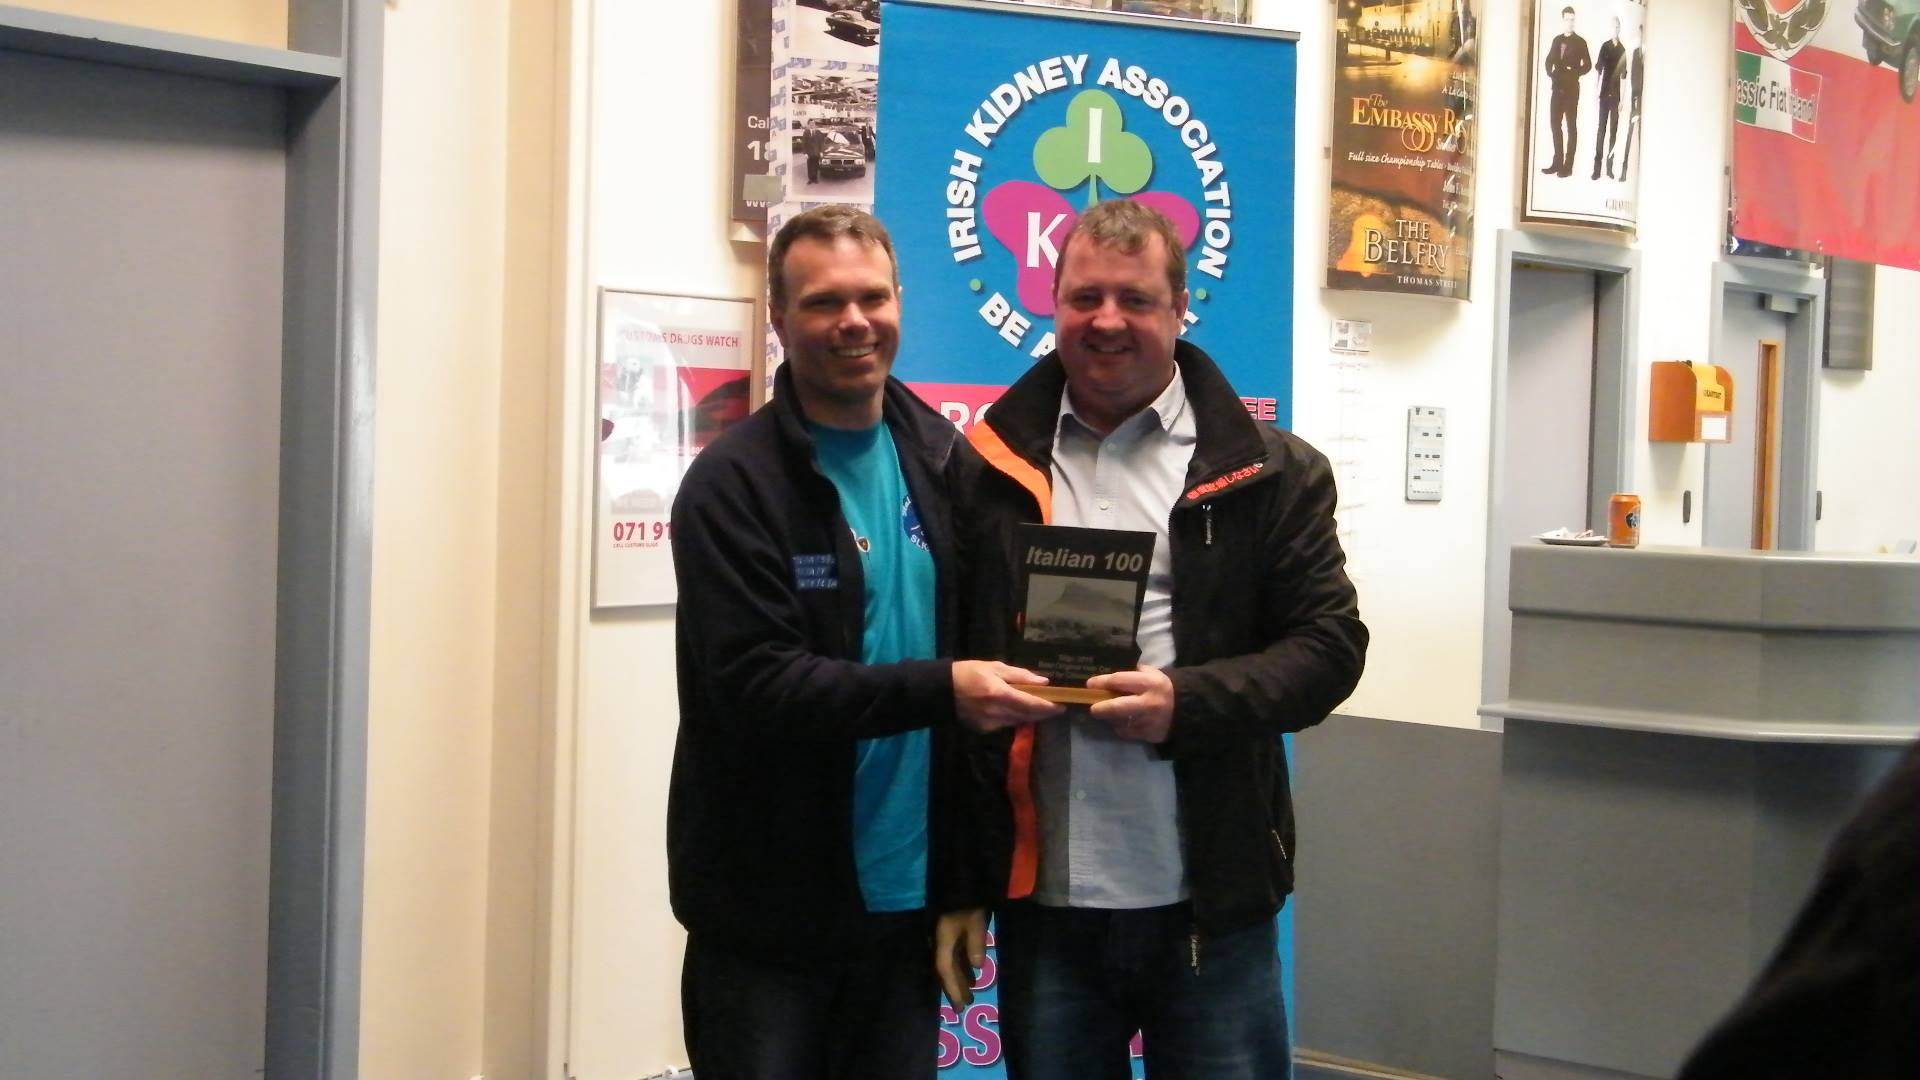 Best original Irish registered Car - Enda Carney; Fiat 132